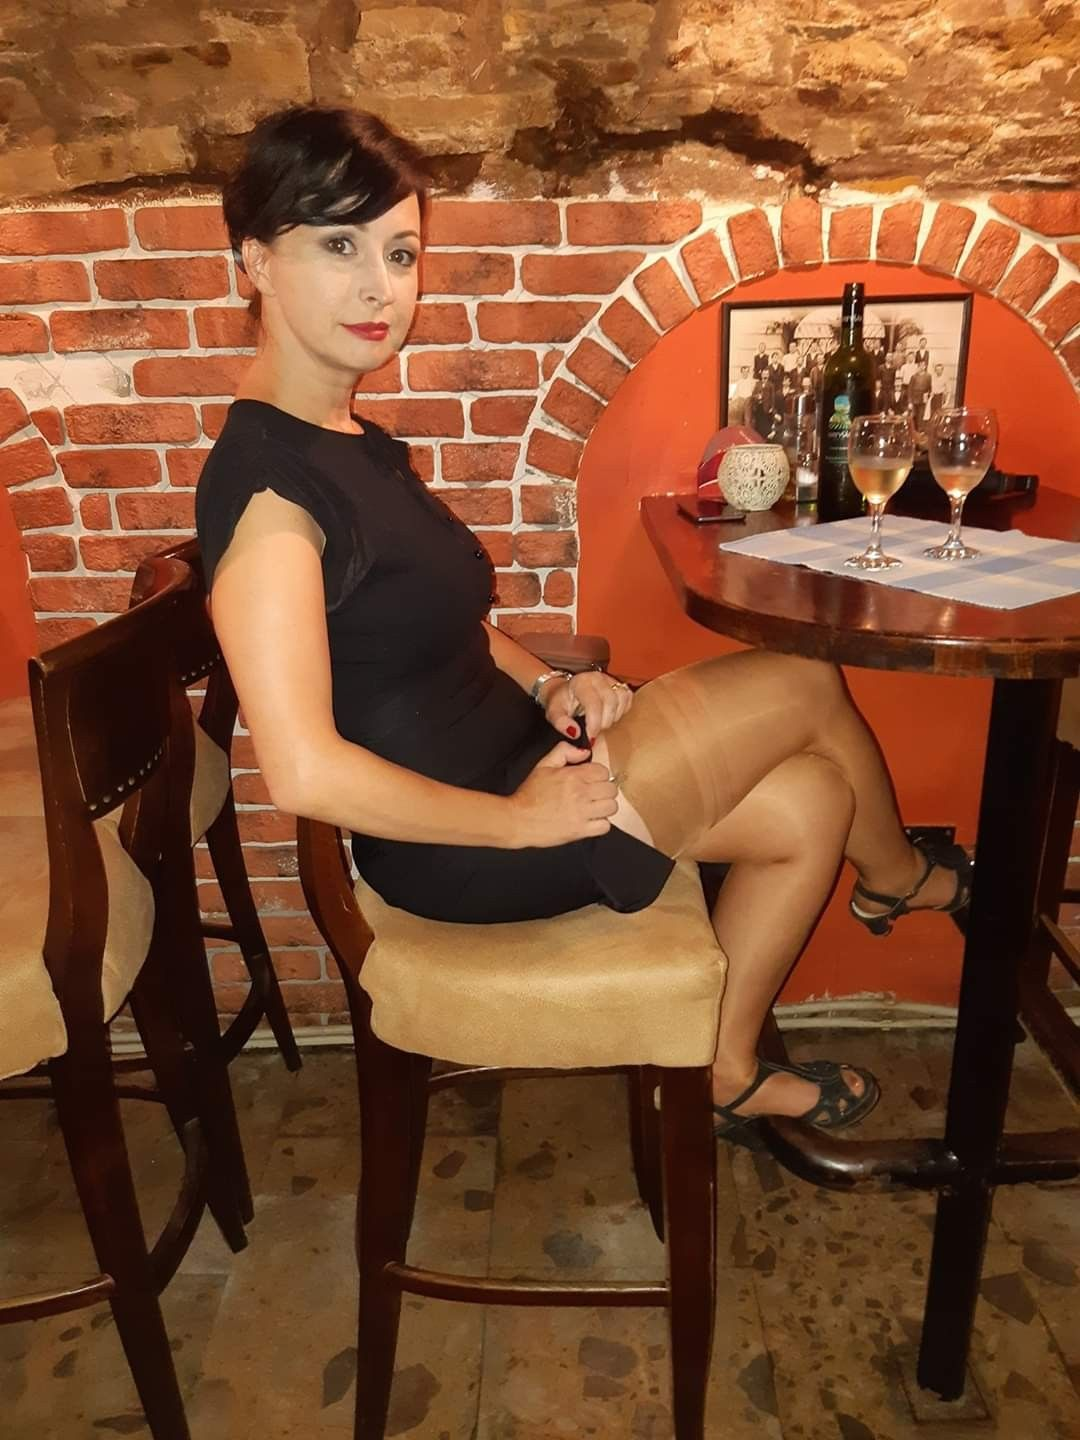 Pin on Stockings in Public